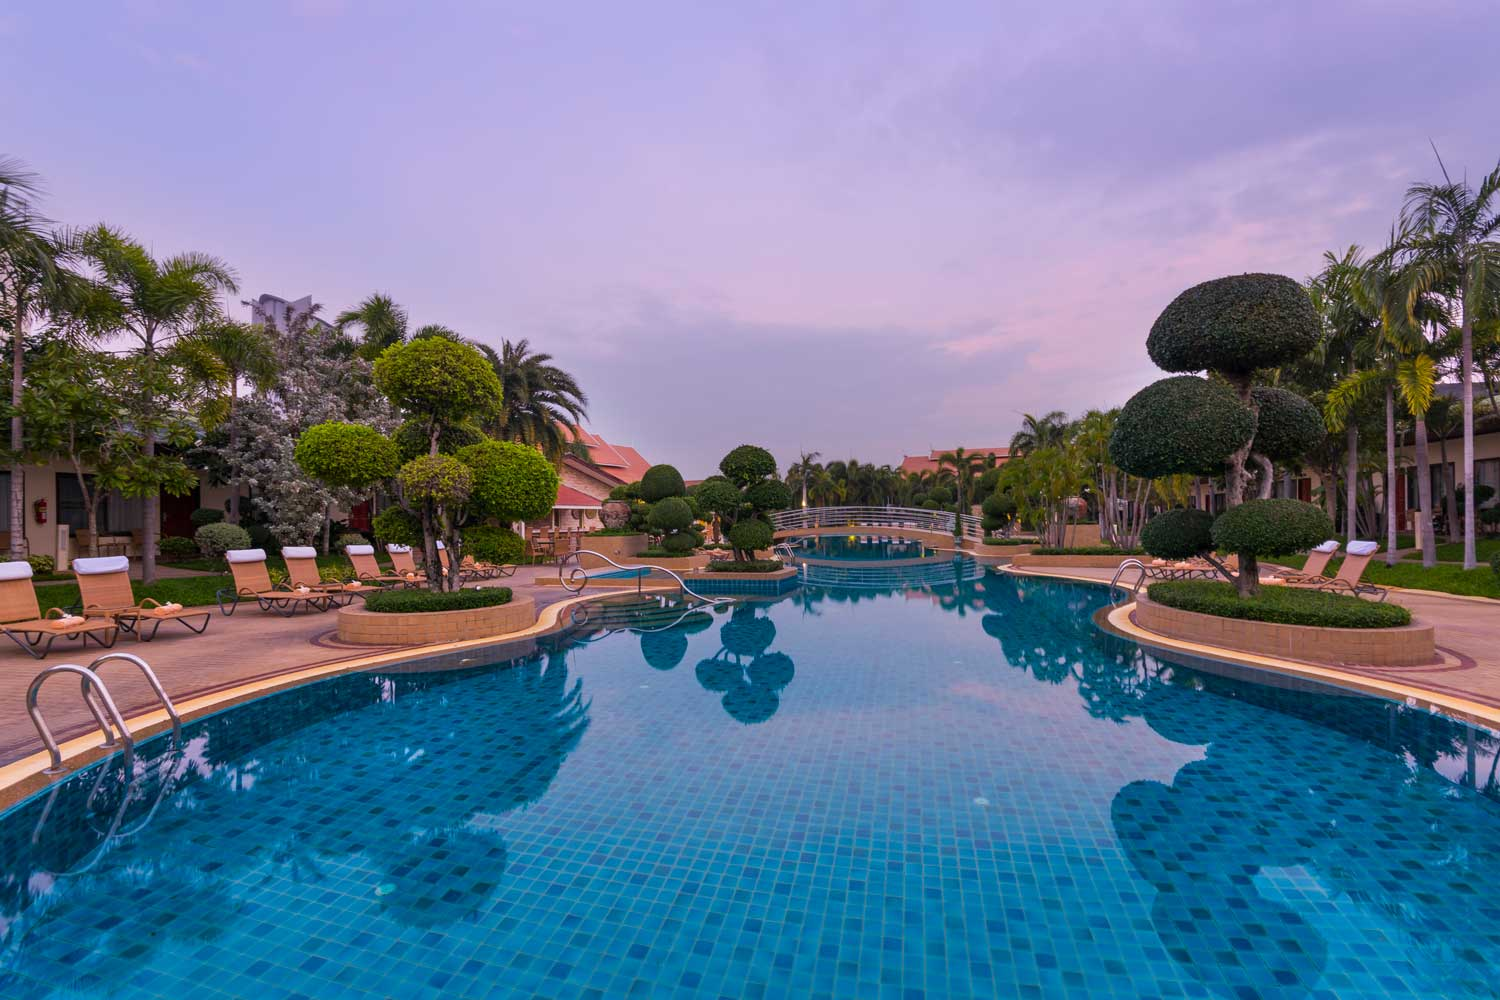 Lagoon Pool and Gardens in the morning at Sunrise at the Thai Garde Resort in Pattaya, Thailand